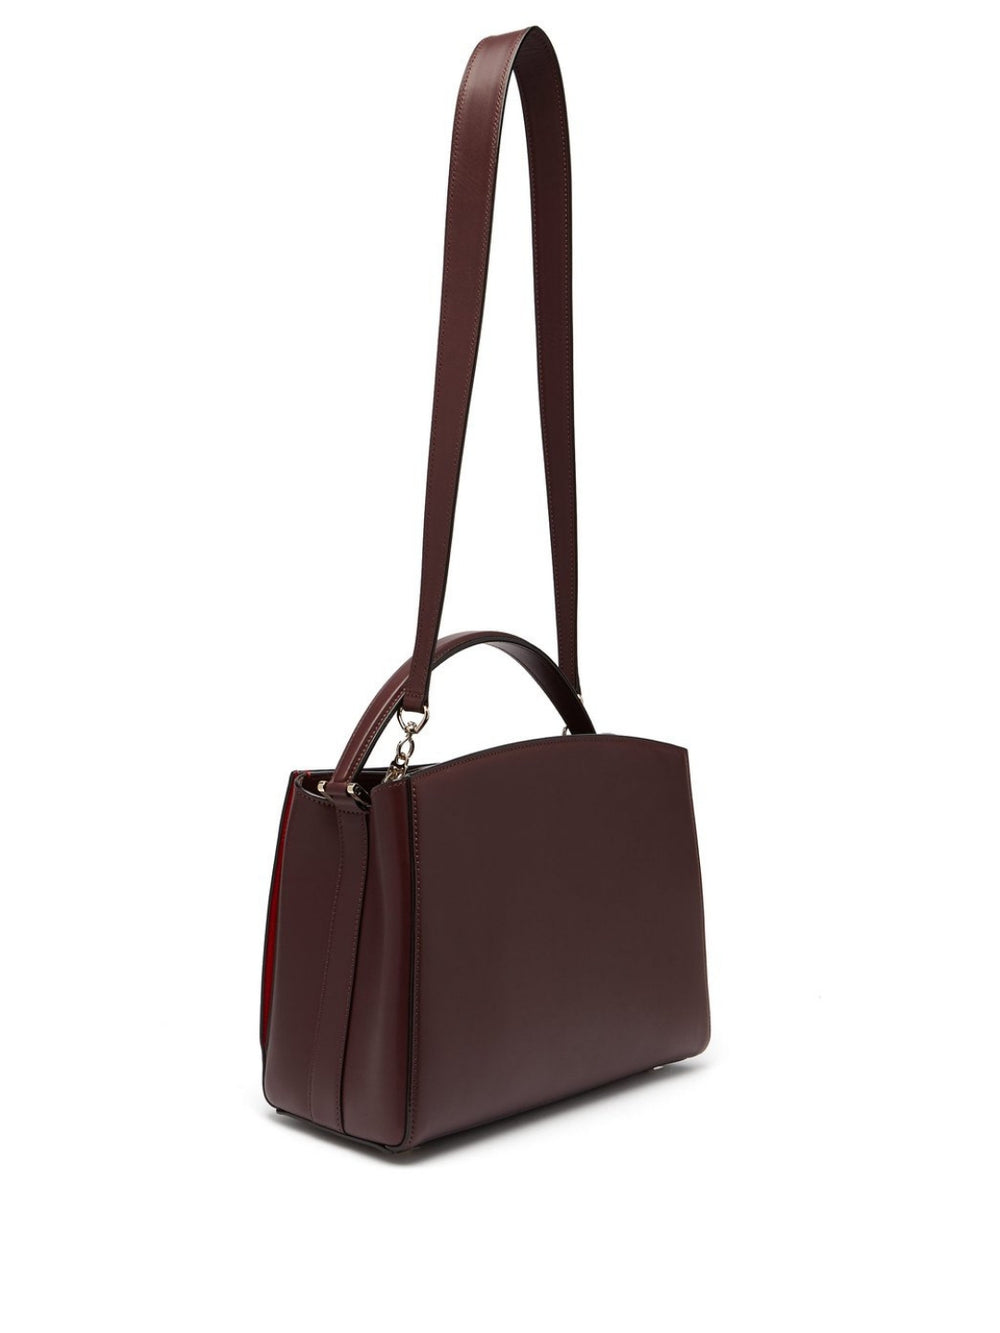 valextra-brera-medium-leather-tote-bag